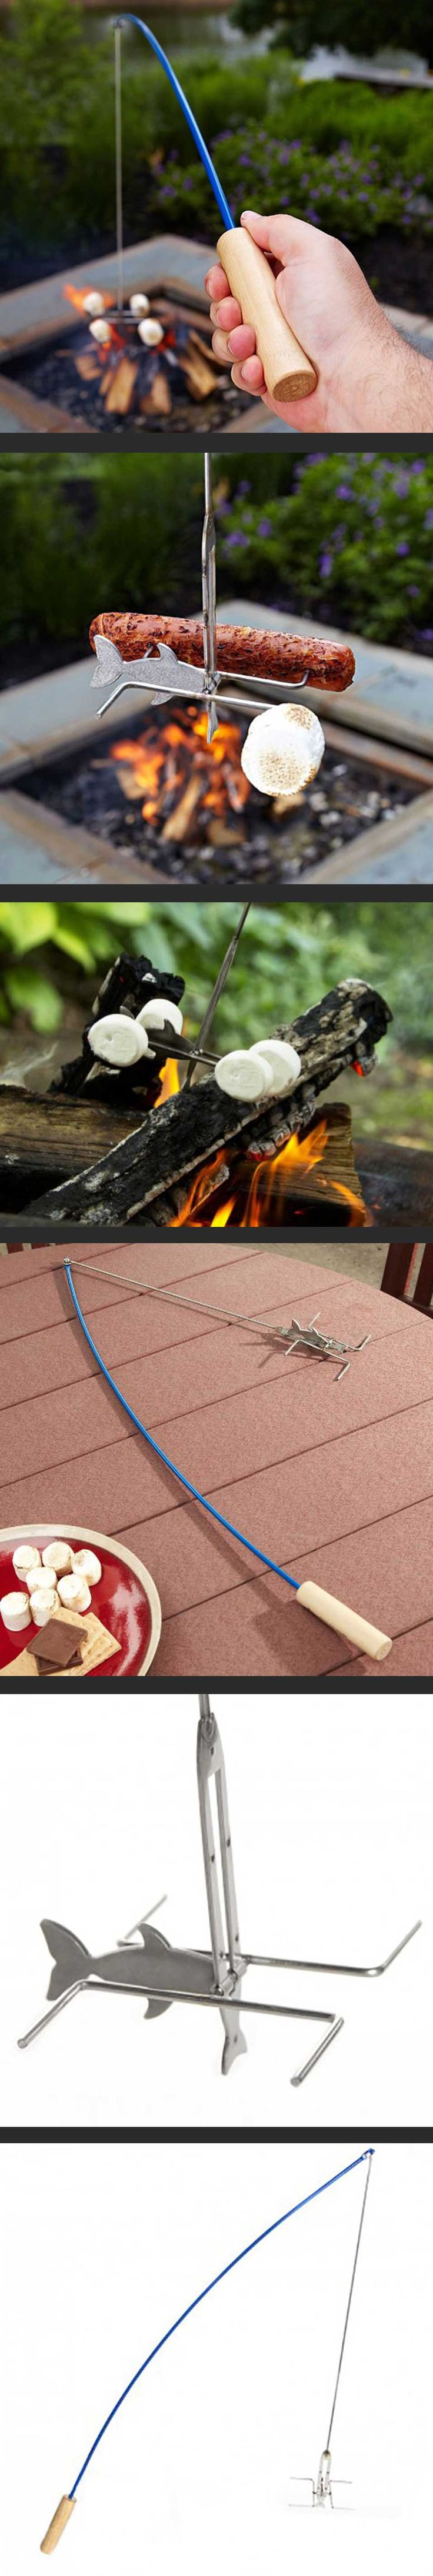 17 best ideas about marshmallow roasting sticks on for Fire fishing pole